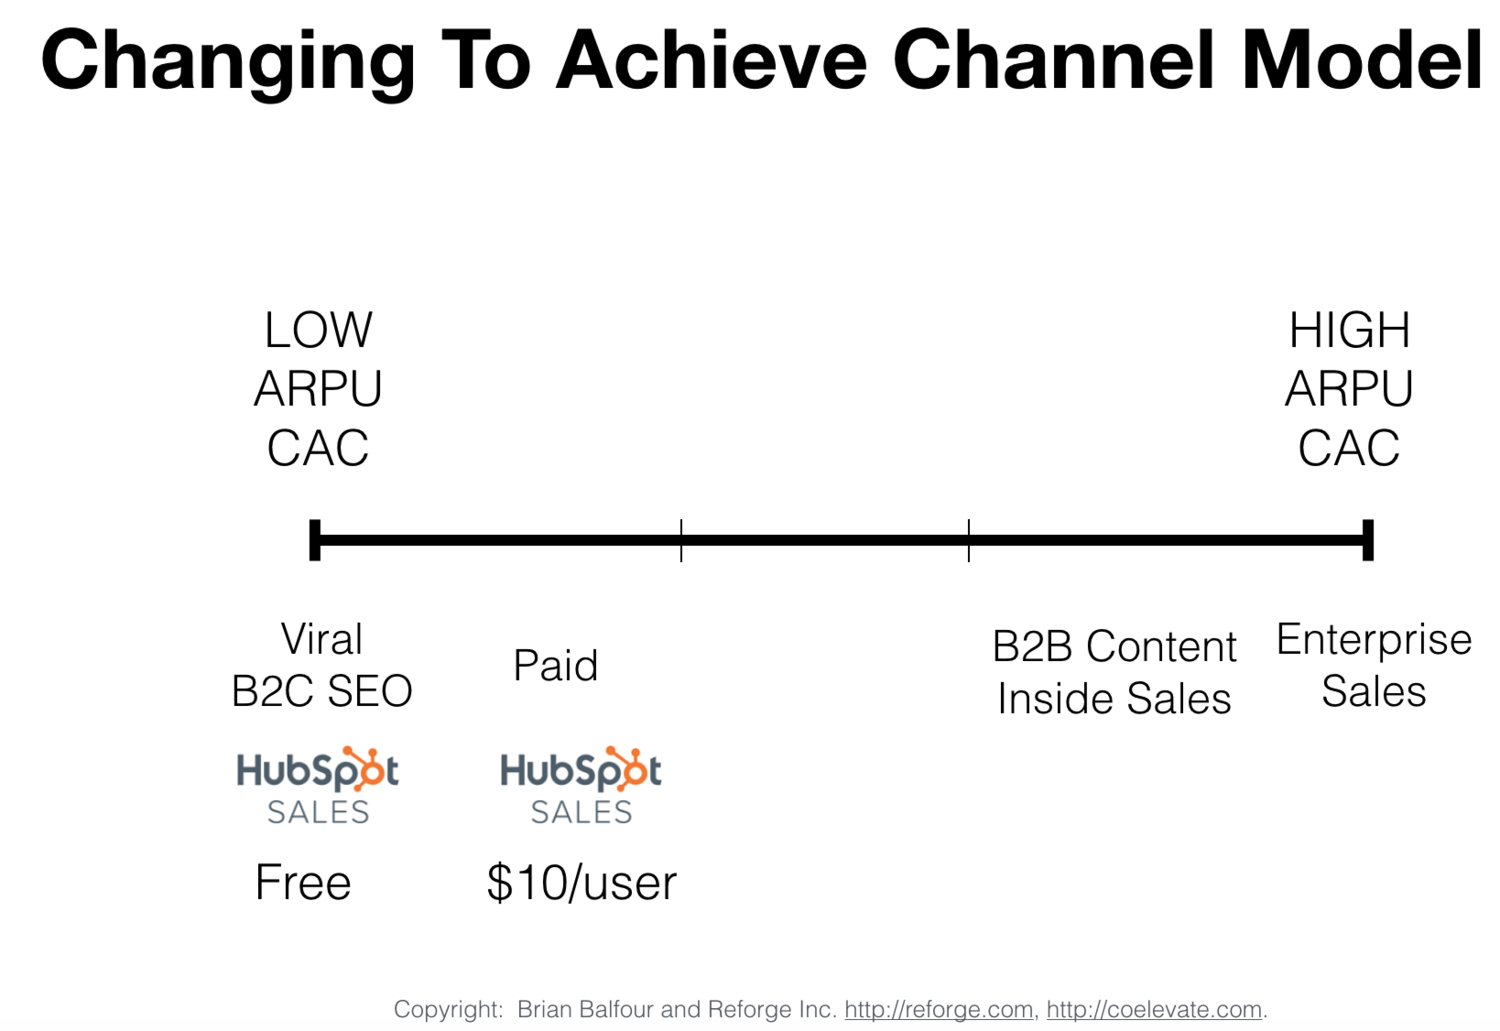 (6) Changing to Achieve Channel Model .png